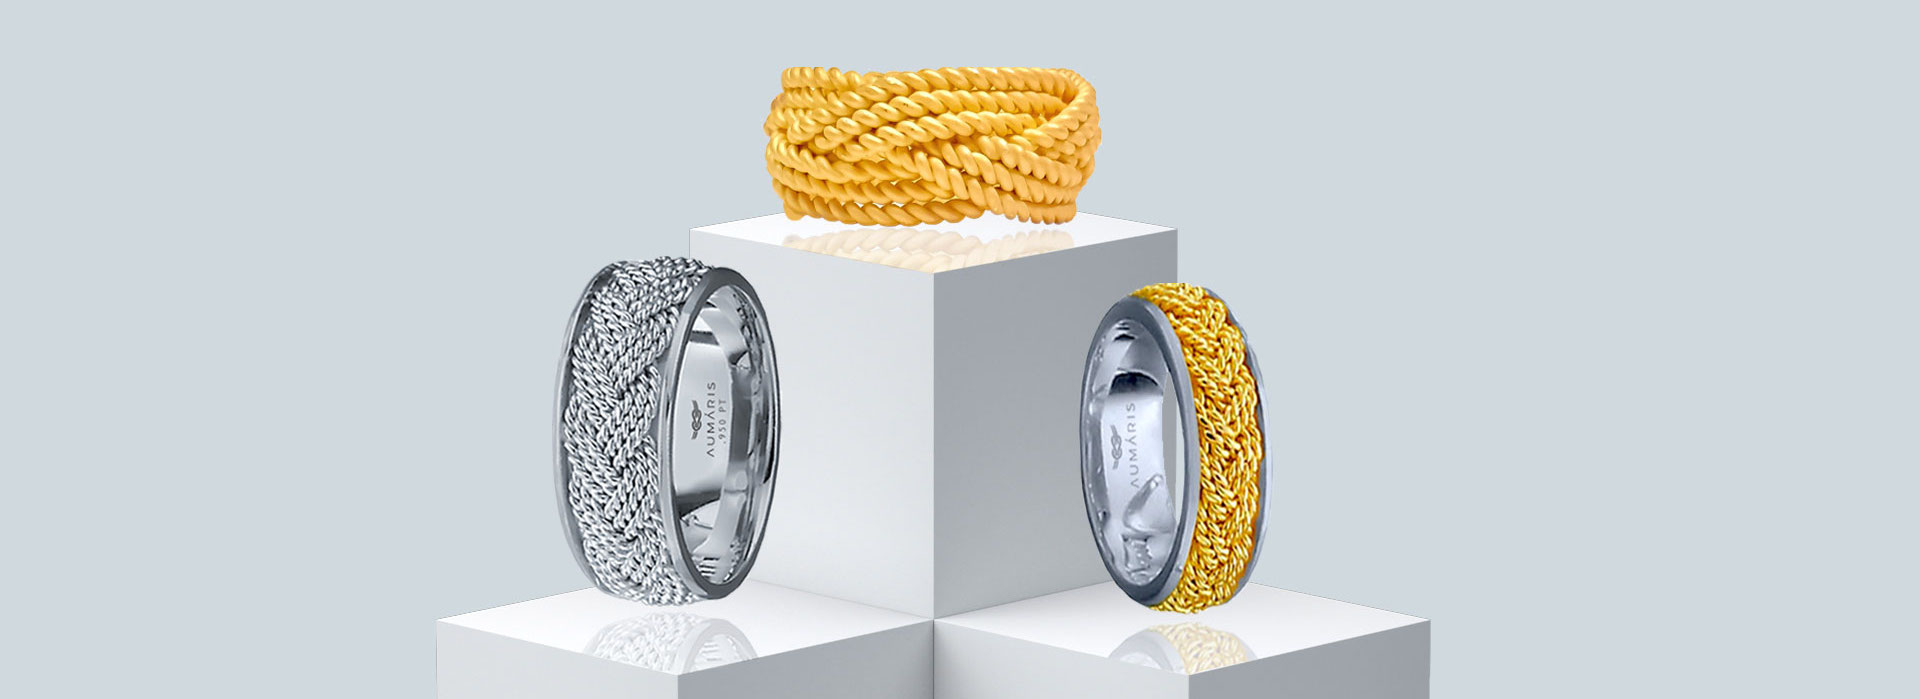 Fine Turks head rings and braided rings are perfect gifts for women and men, celebrate a nautical weddings, an anniversaries, great birthday gifts too, the comfort is just the beginning.